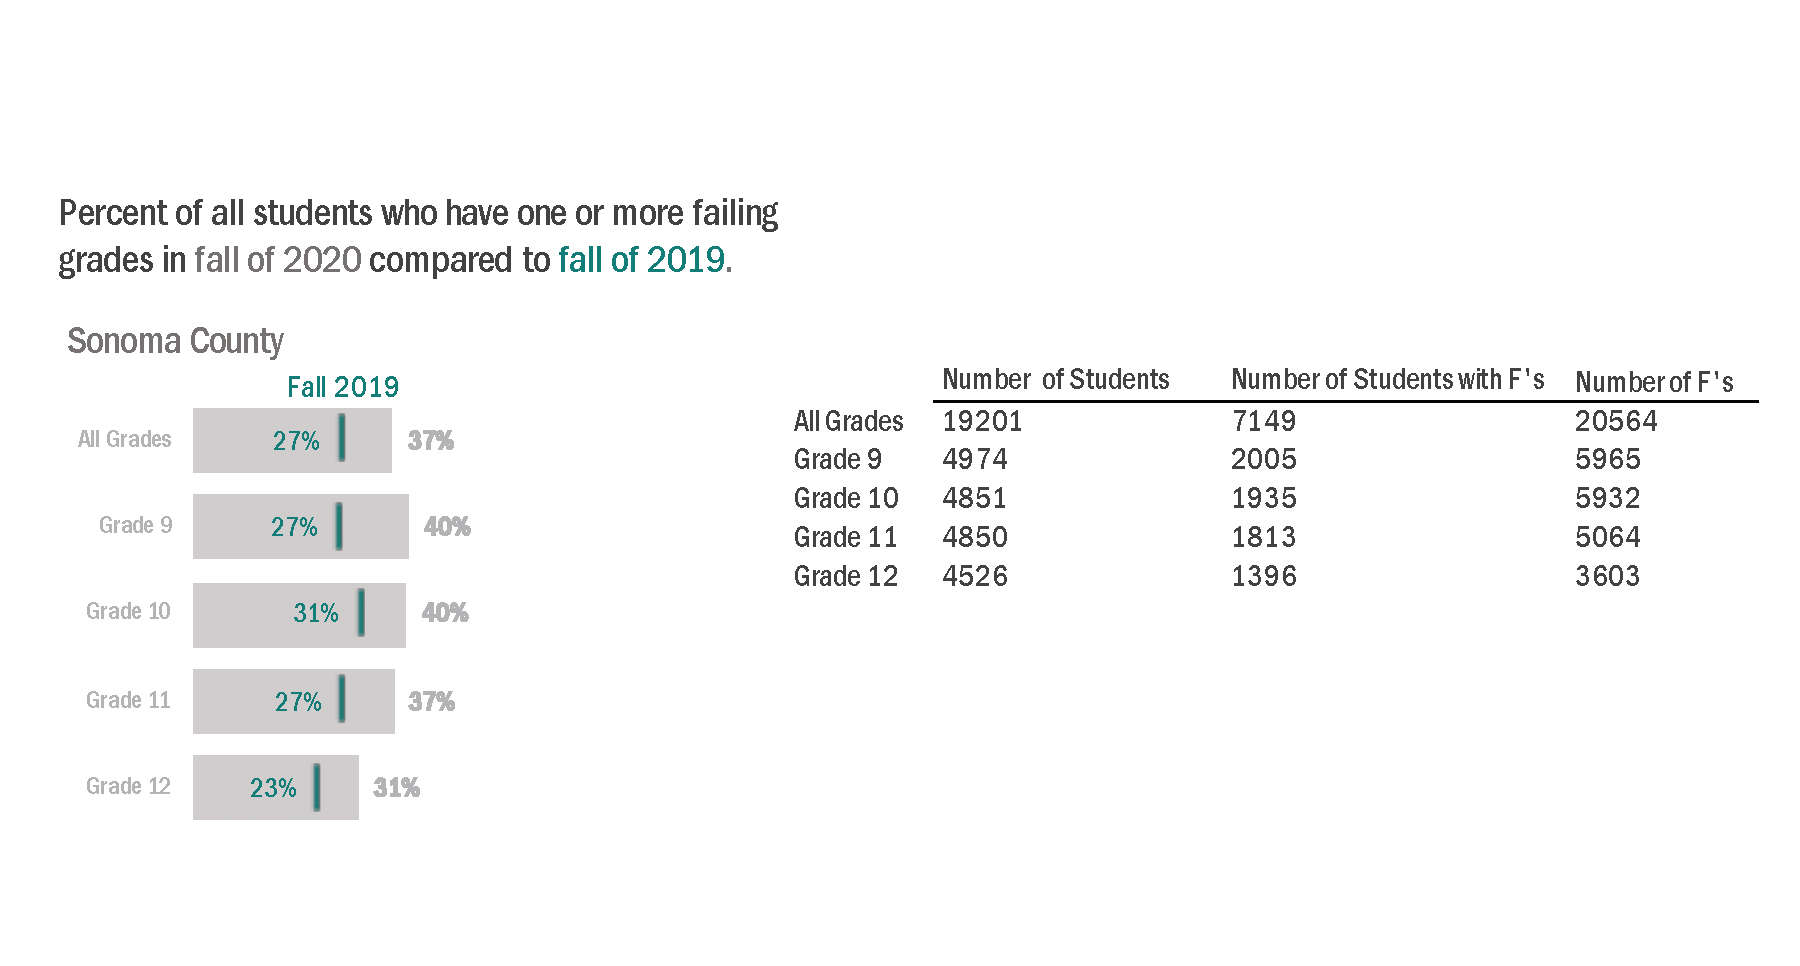 Chart shows that percent of students with failing grades rose from 27 to 37 percent